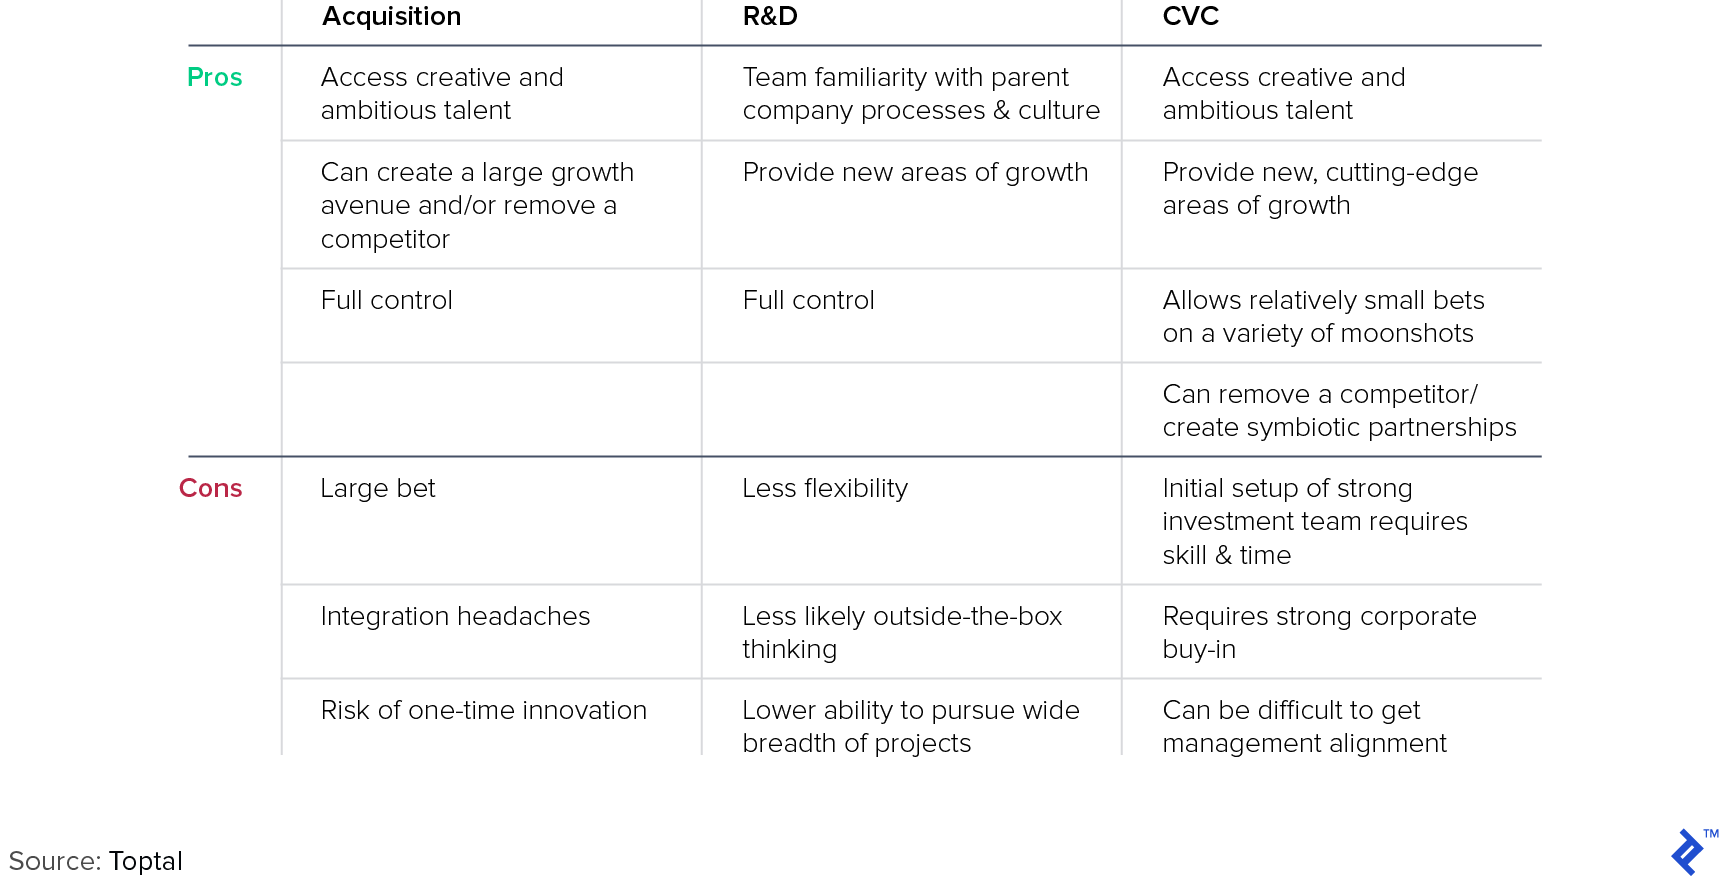 Comparison of the Pros and Cons of Acquisition, R&D, and CVC